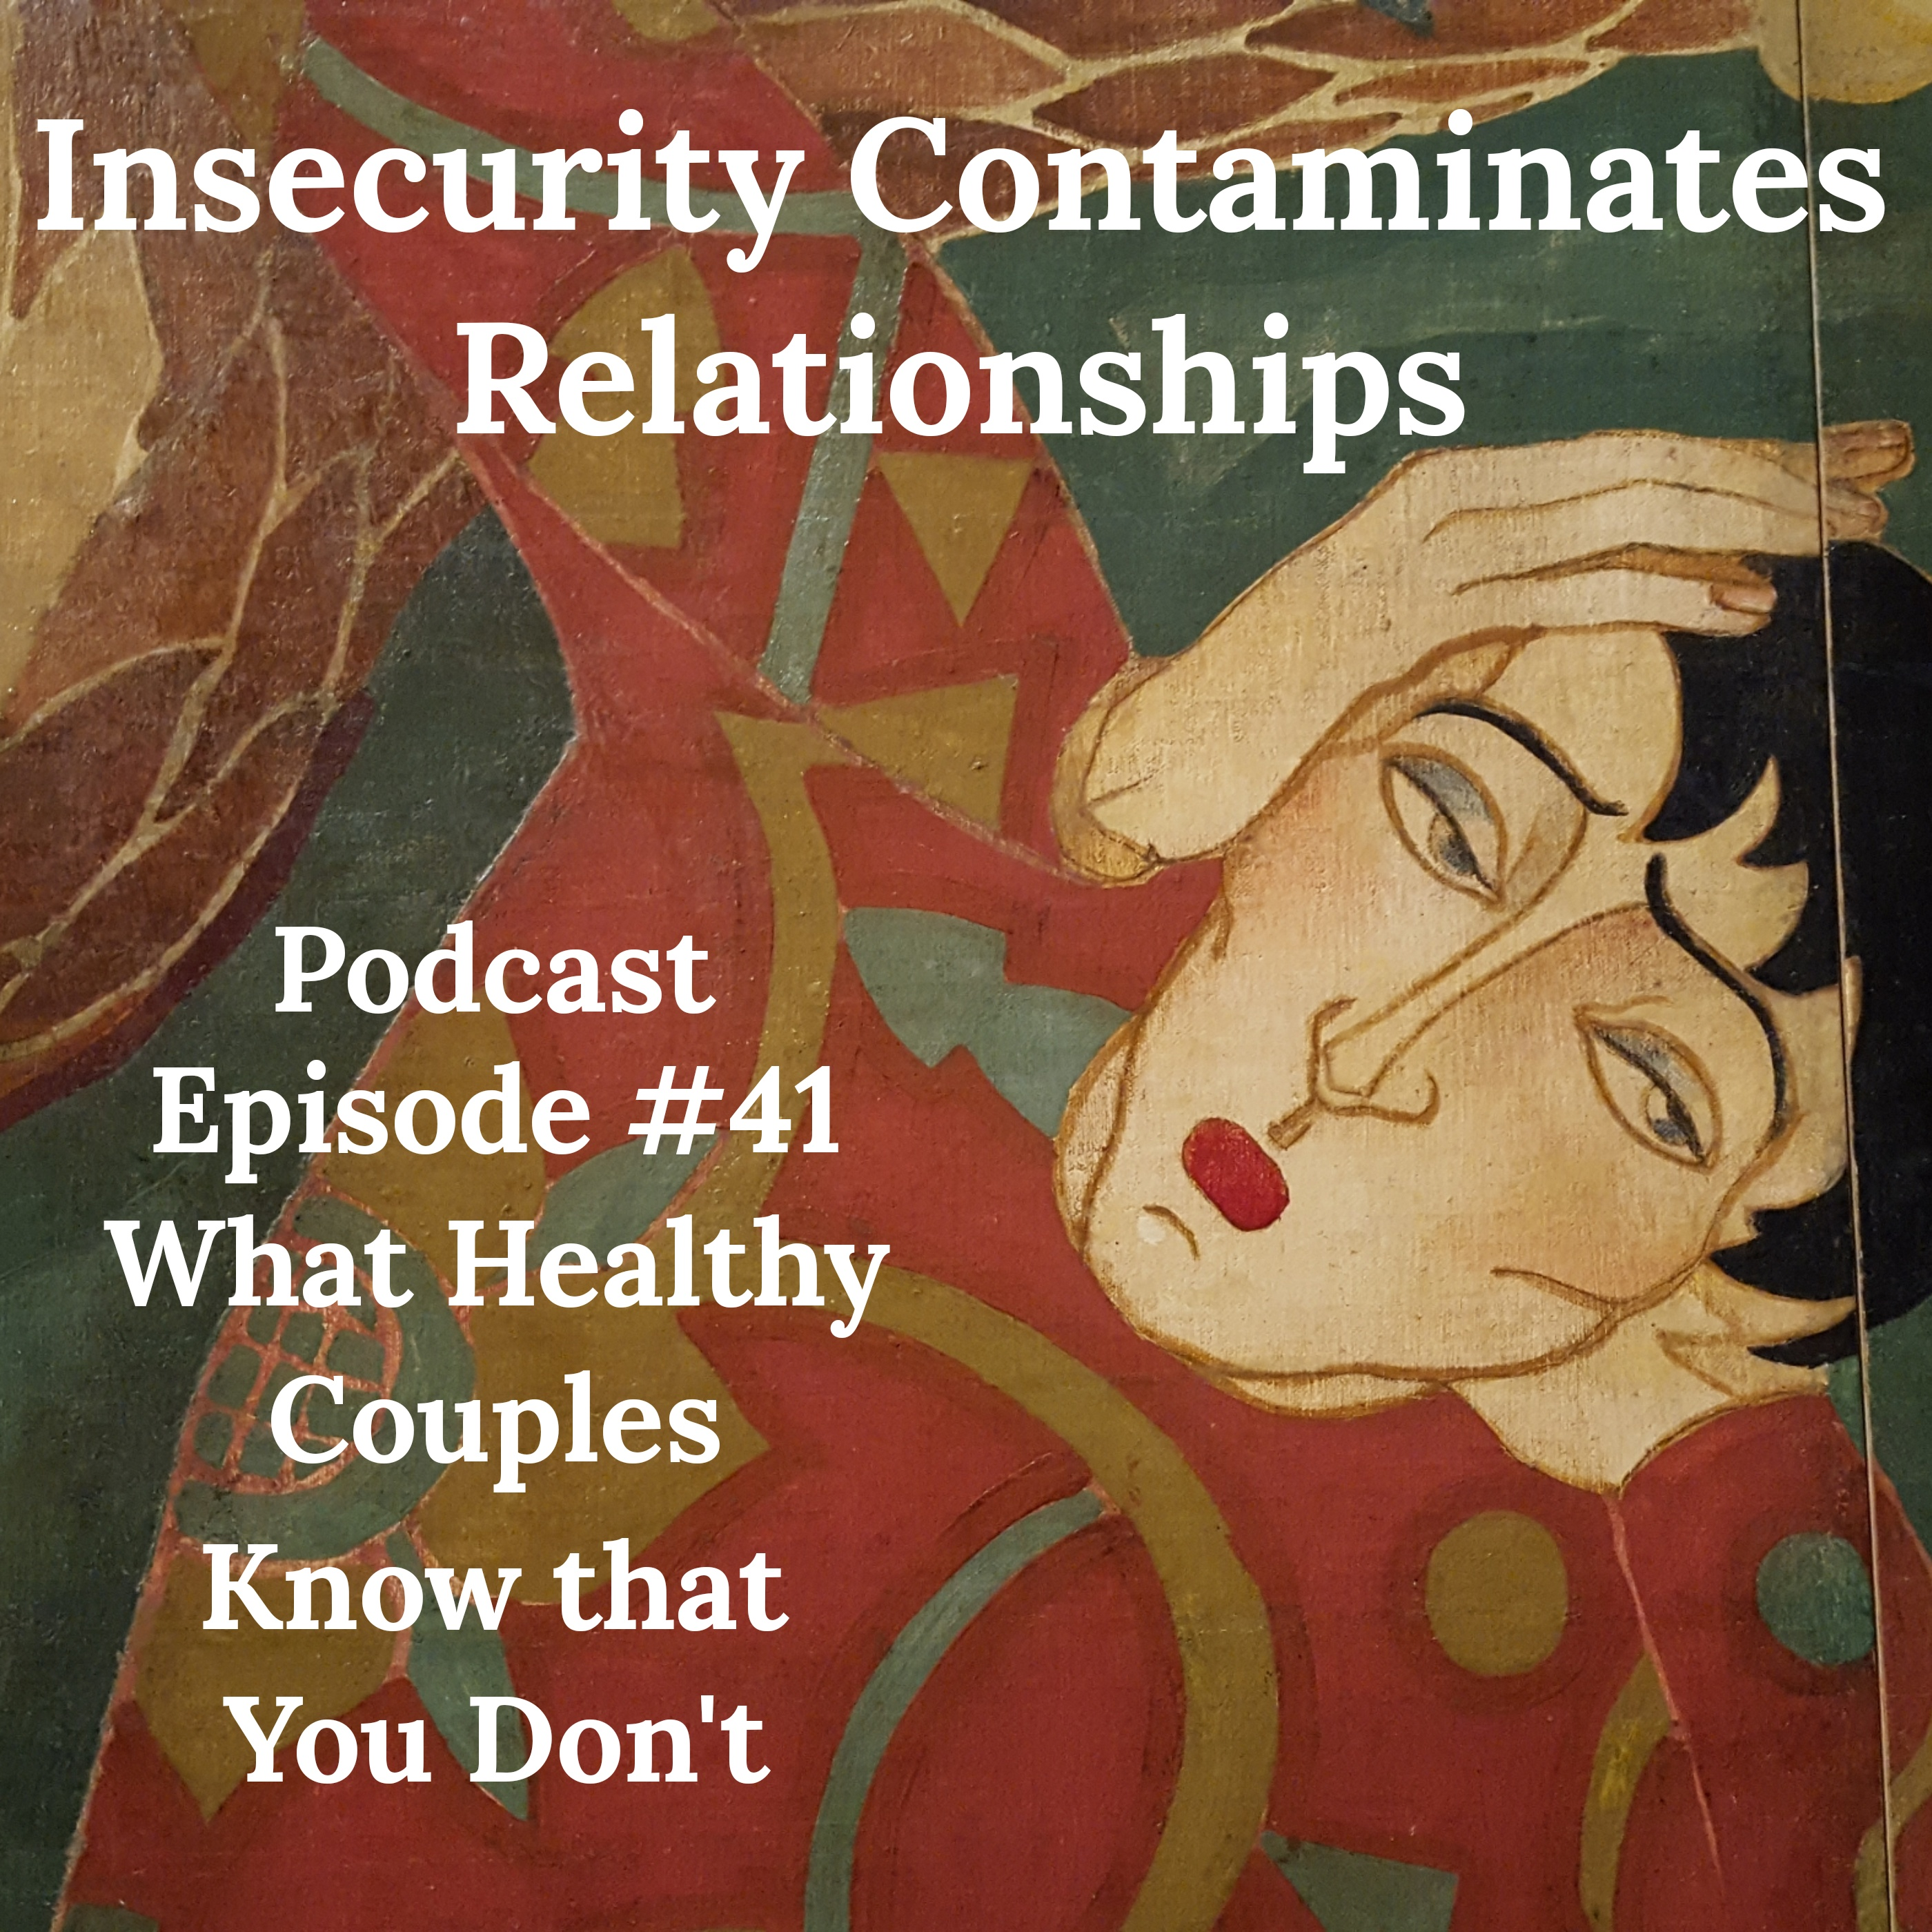 What Healthy Couples Know That You Don't - Insecure? How it Contaminates Relationships Episode #41